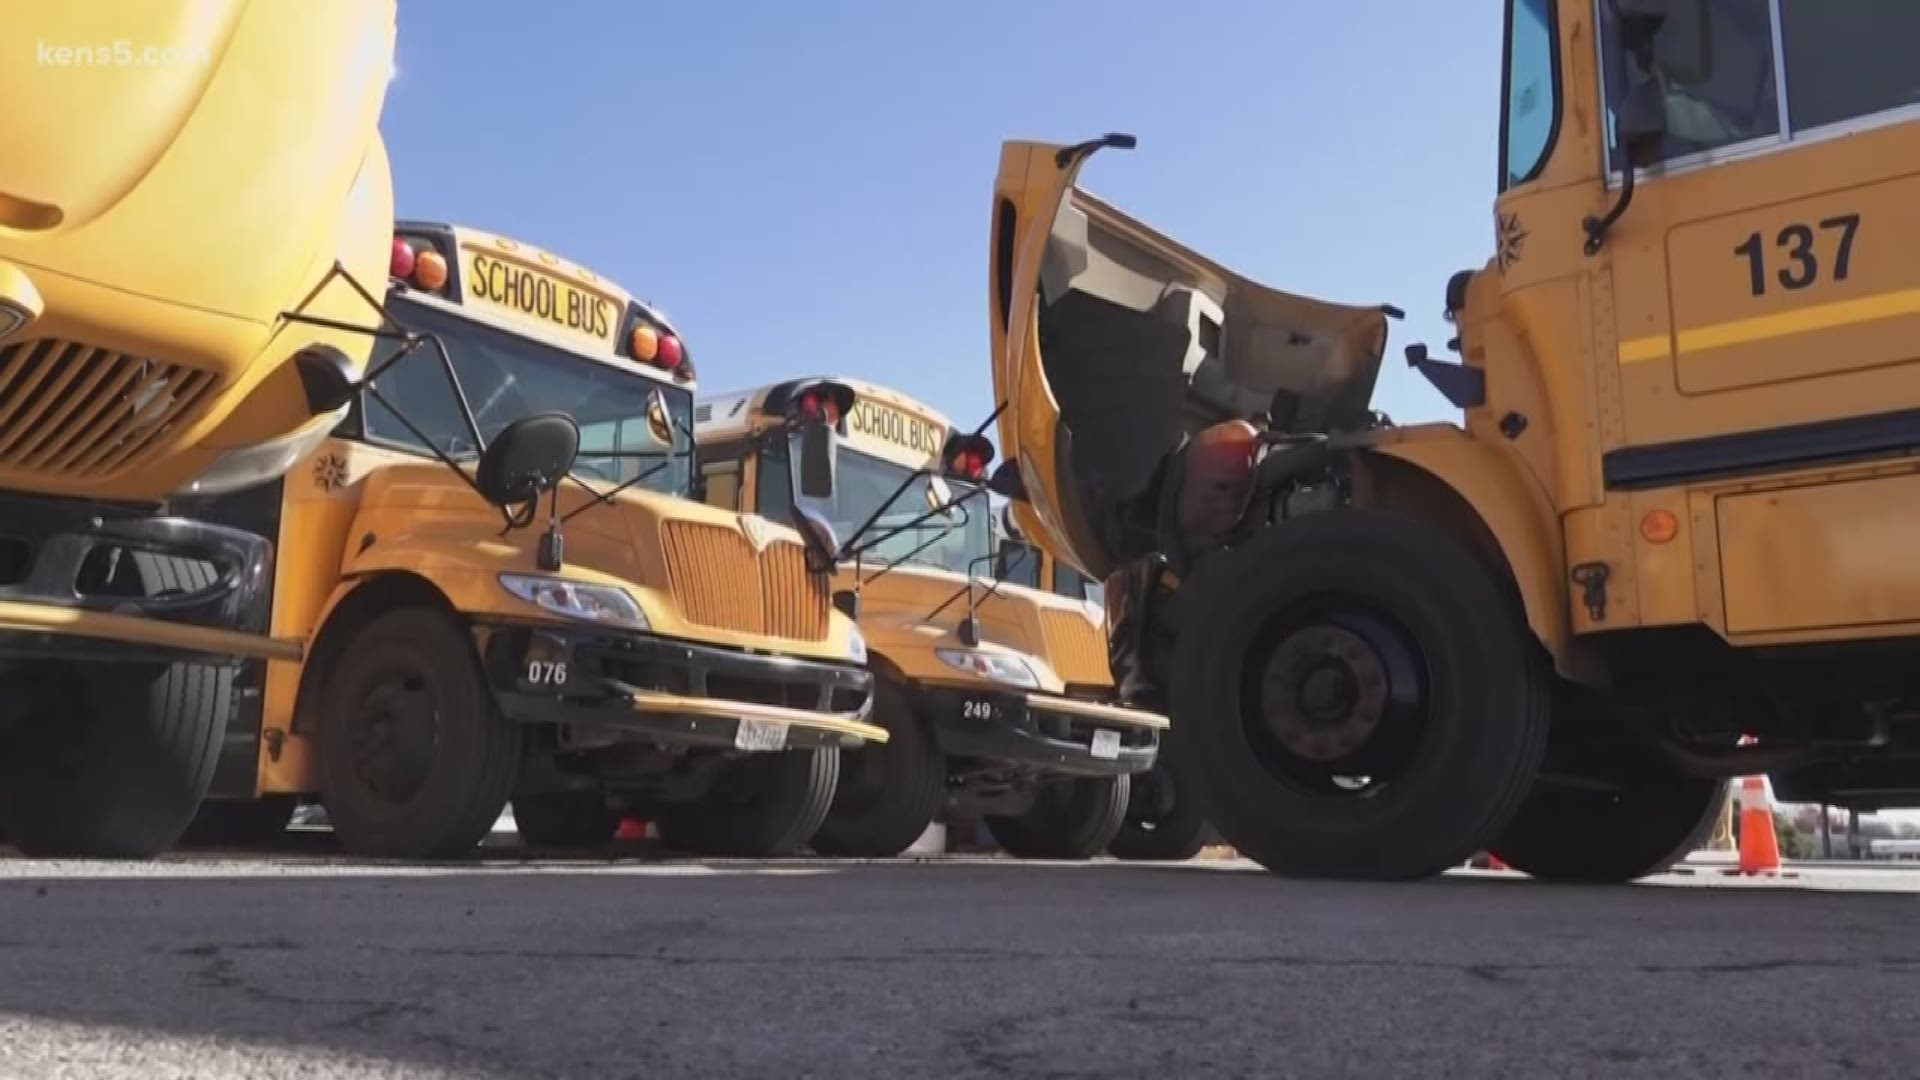 NEISD says 29 buses impacted by fuel mix up | newswest9.com